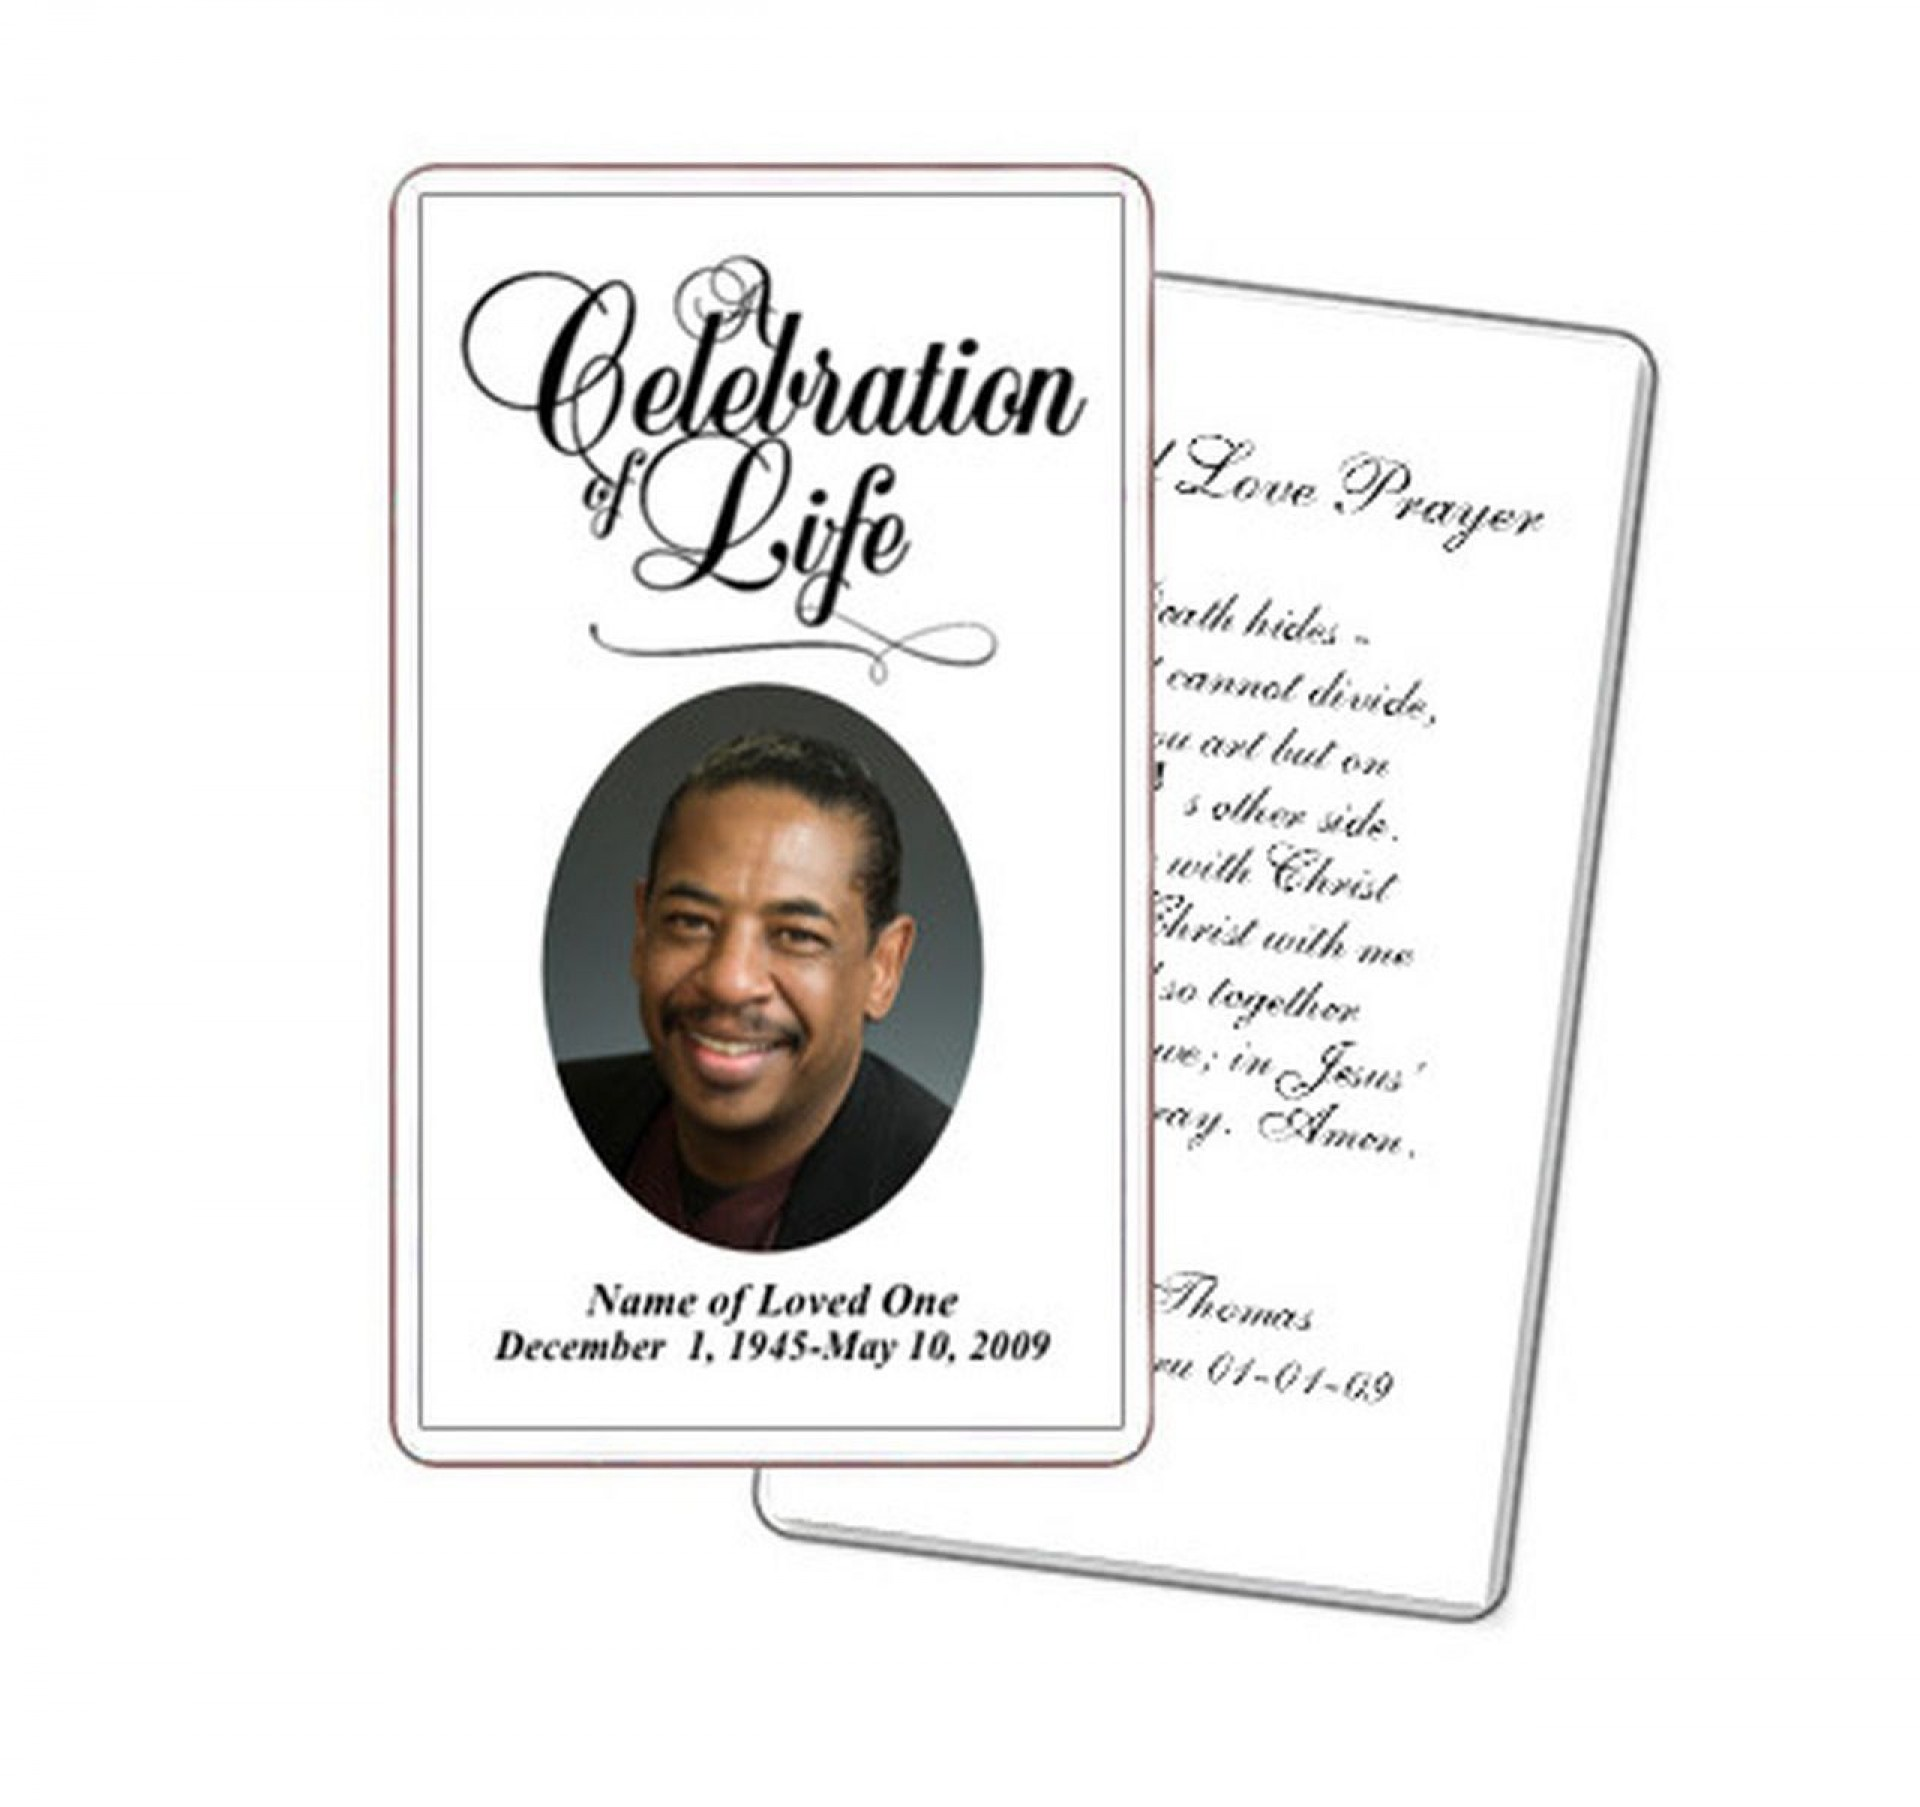 005 Remarkable Funeral Prayer Card Template Sample  Templates For Word Free1920